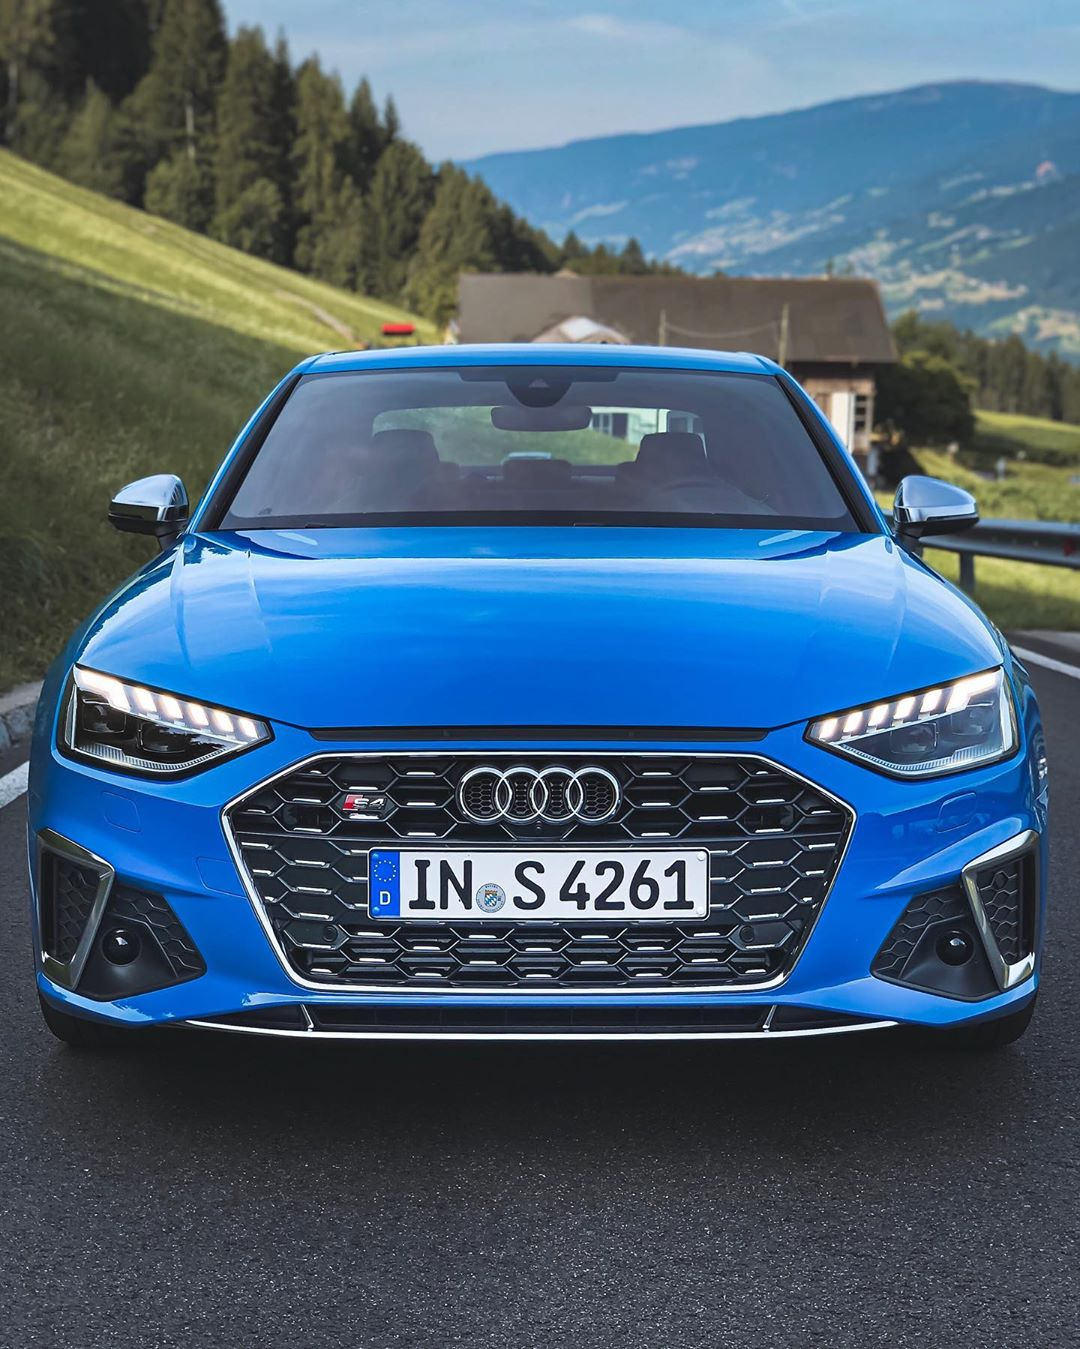 """T U R B O  B L U E  S4 TDI Limo! The second day with the new S4 also doesn't disappoint…surprisingly: It's a car which gets better the faster you drive it…almost seems like a """"high rpm concept"""" which has great pull on top end! #audi #audis4 #audis4b9 #audis4avant #s4facelift #s4 #s4avant #automanntv #s4tdi"""